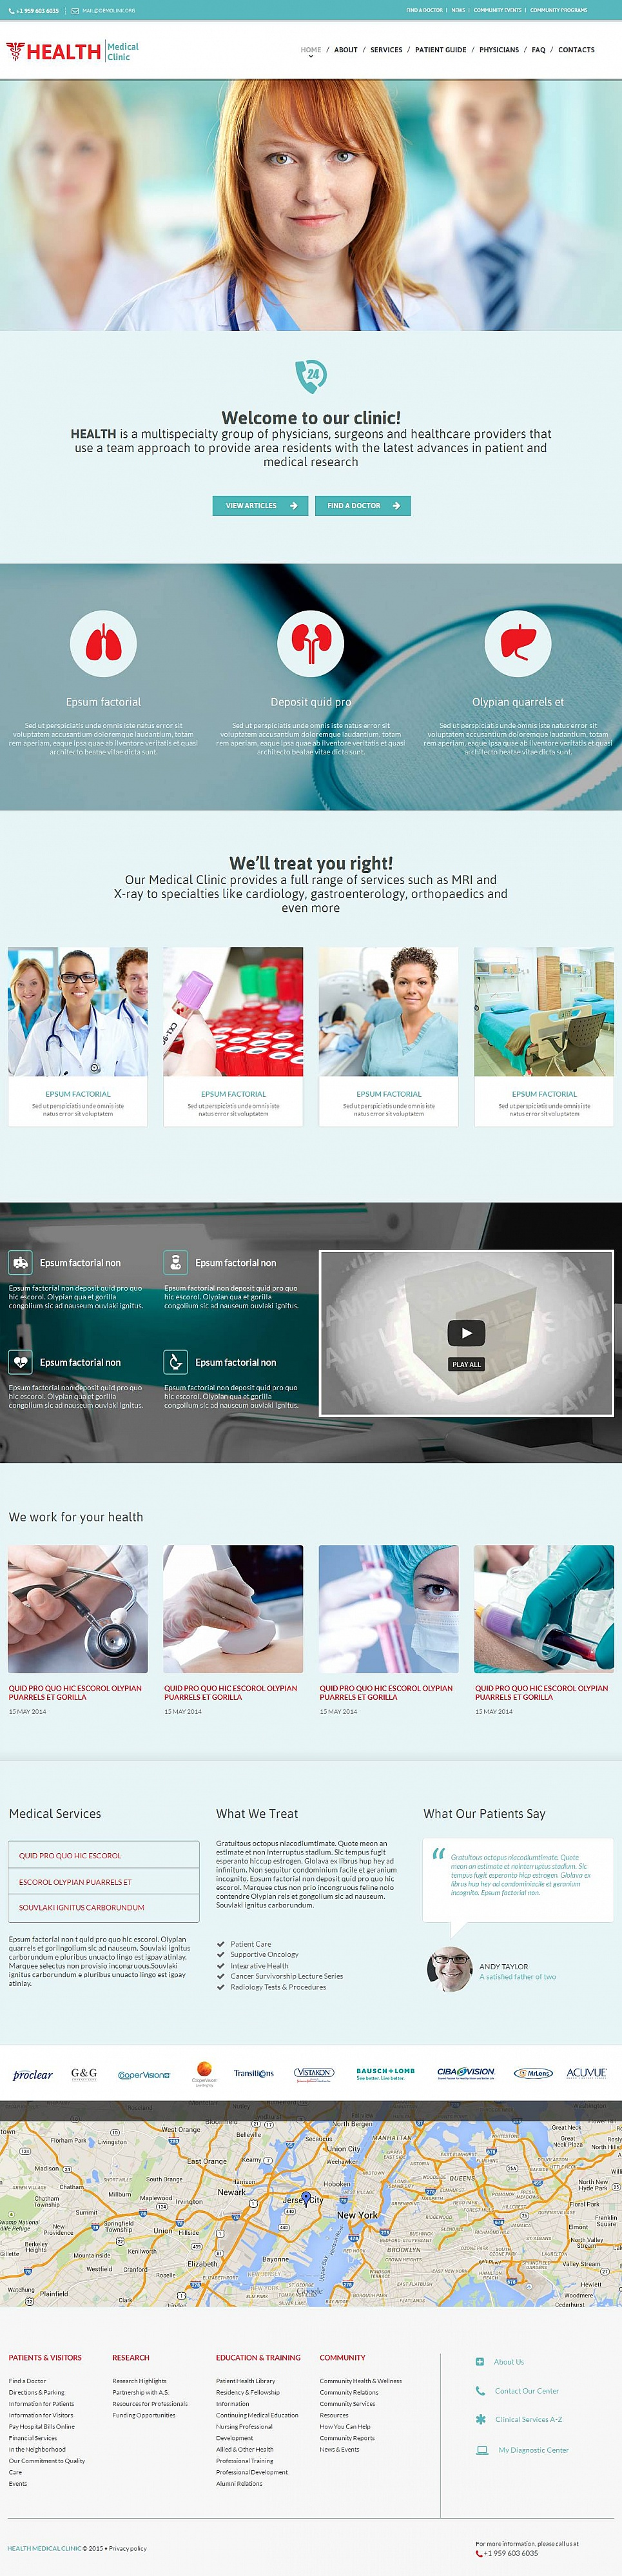 Health Website Template - image